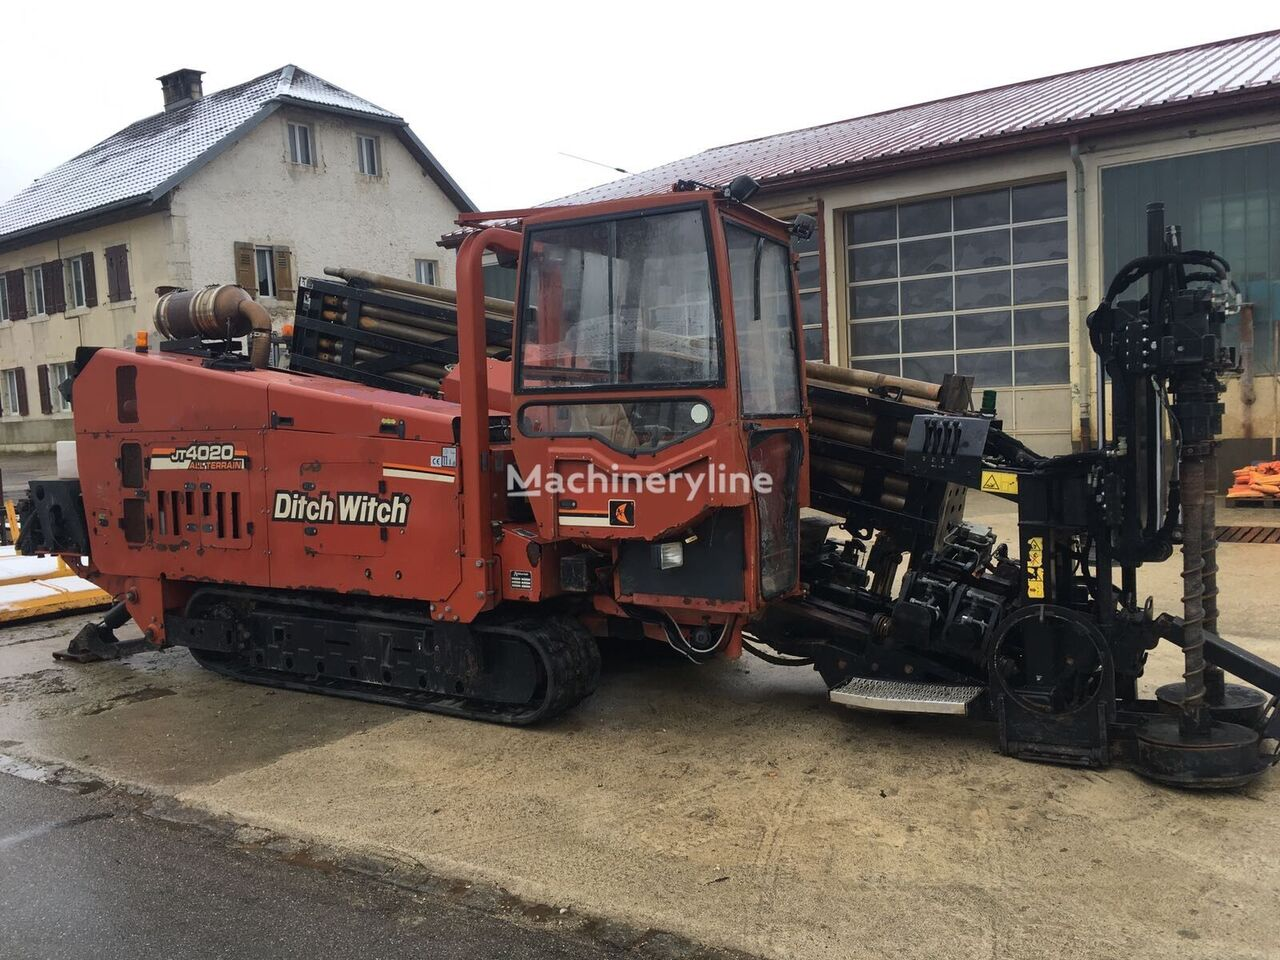 DITCH-WITCH JT4020 AT horizontal drilling rig